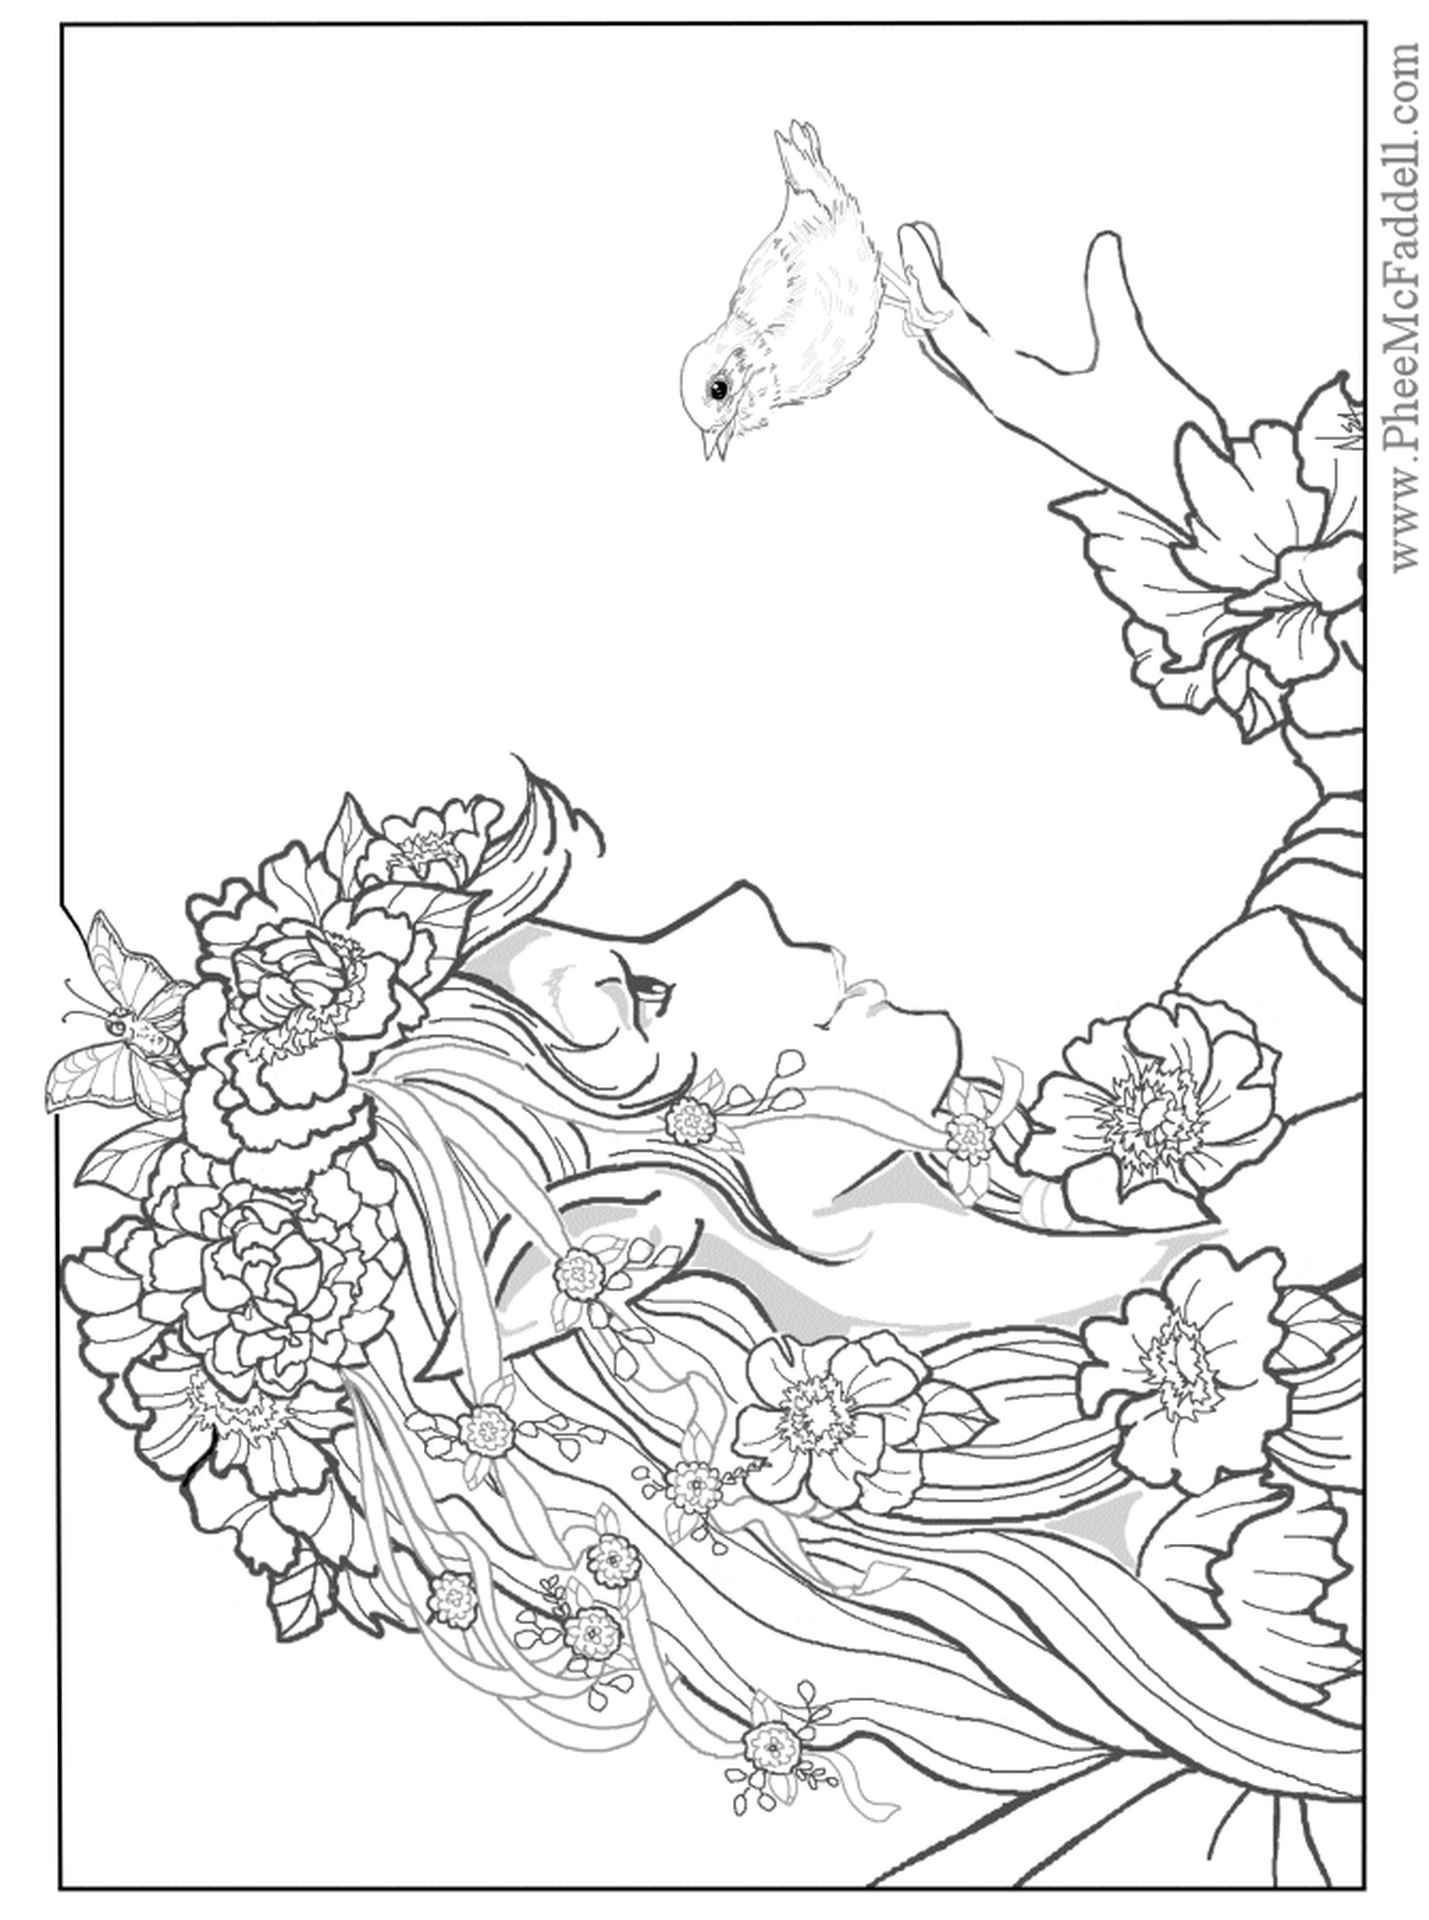 Beautiful Elf With A Bird Coloring Page For Adults